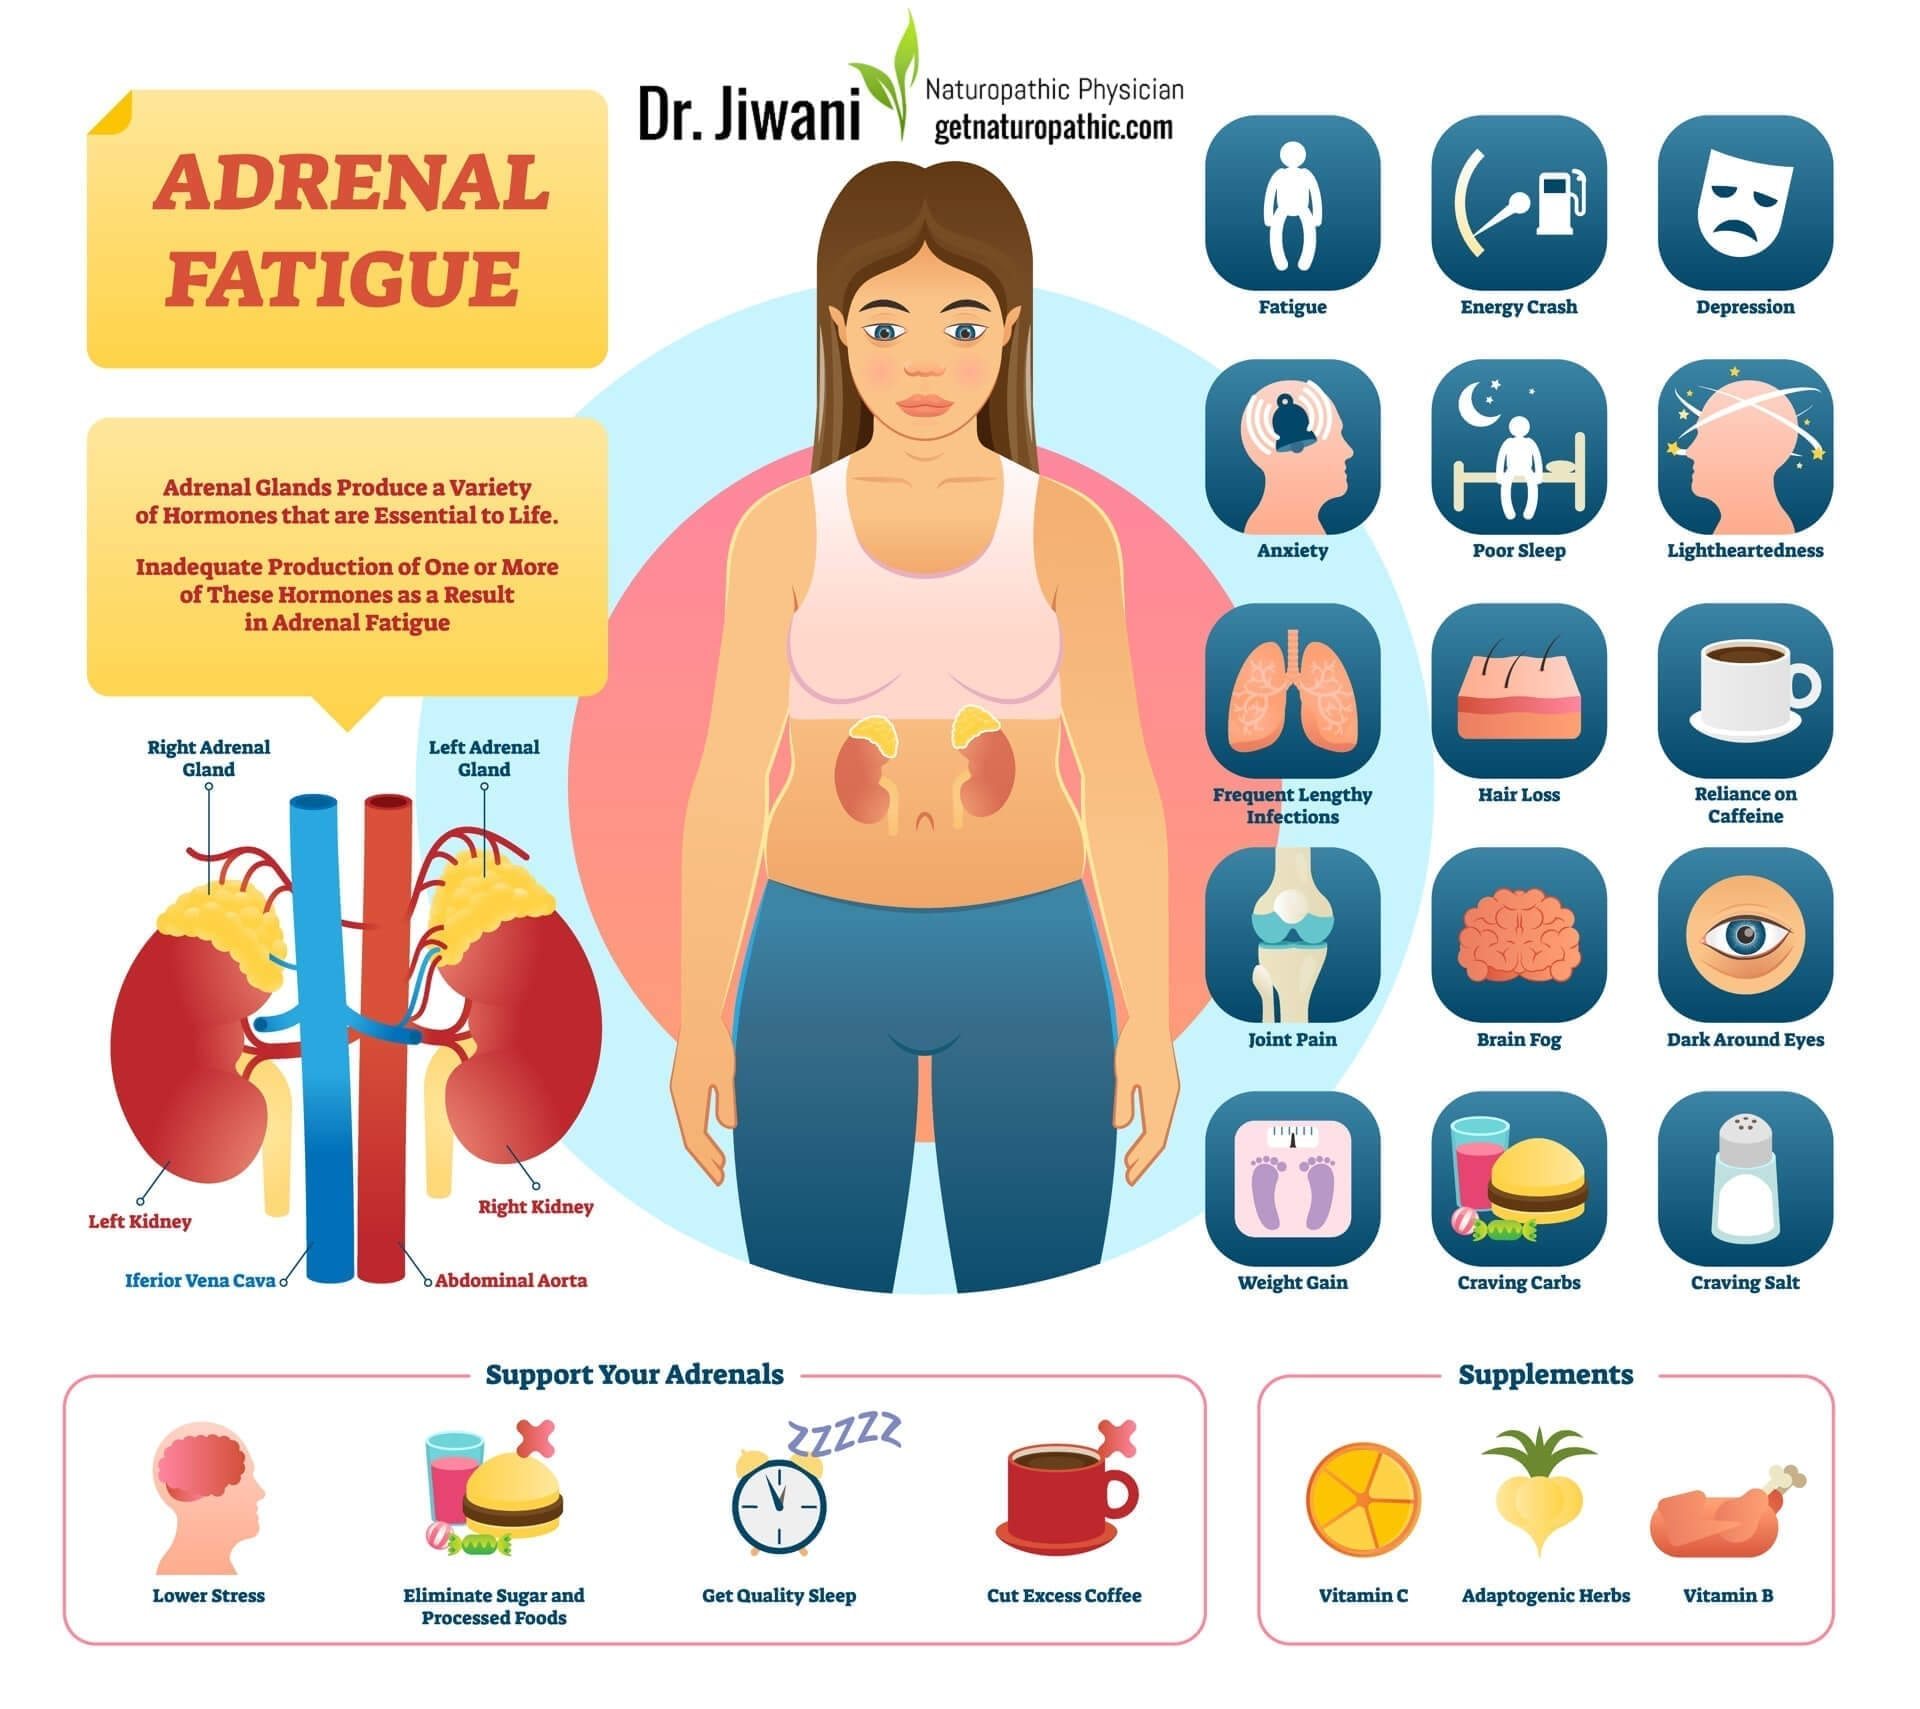 Dr. Jiwani Adrenal Fatigue: When You're Too Tired to Enjoy Life! Infographic | Dr. Jiwani's Naturopathic Nuggets Blog